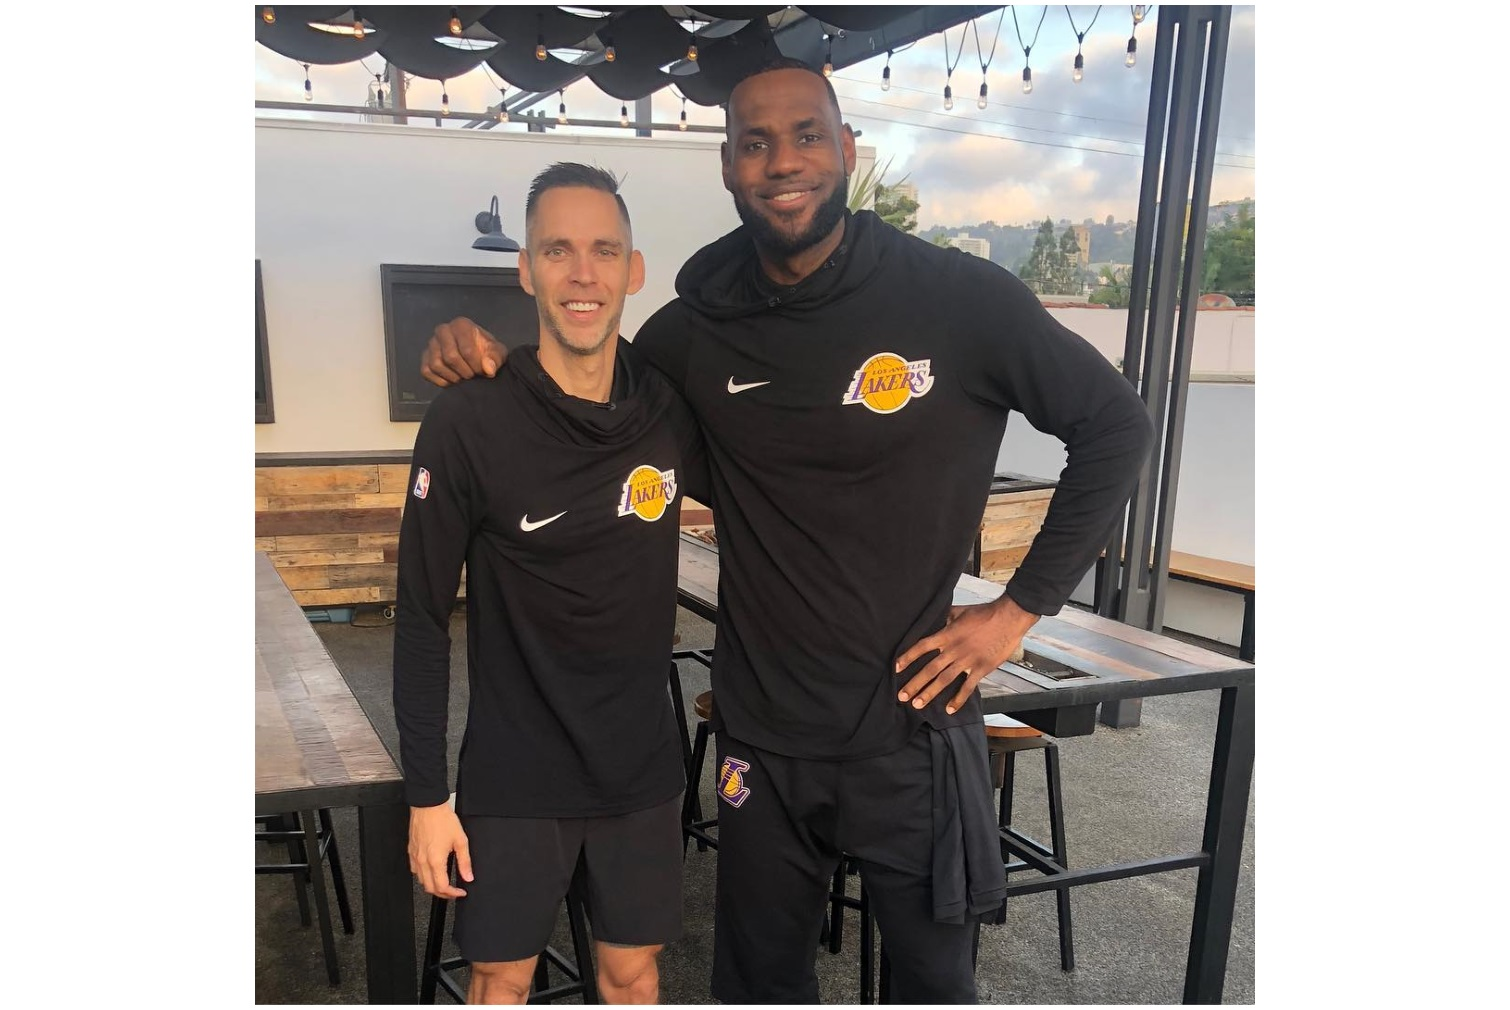 Ryan West and LeBron James